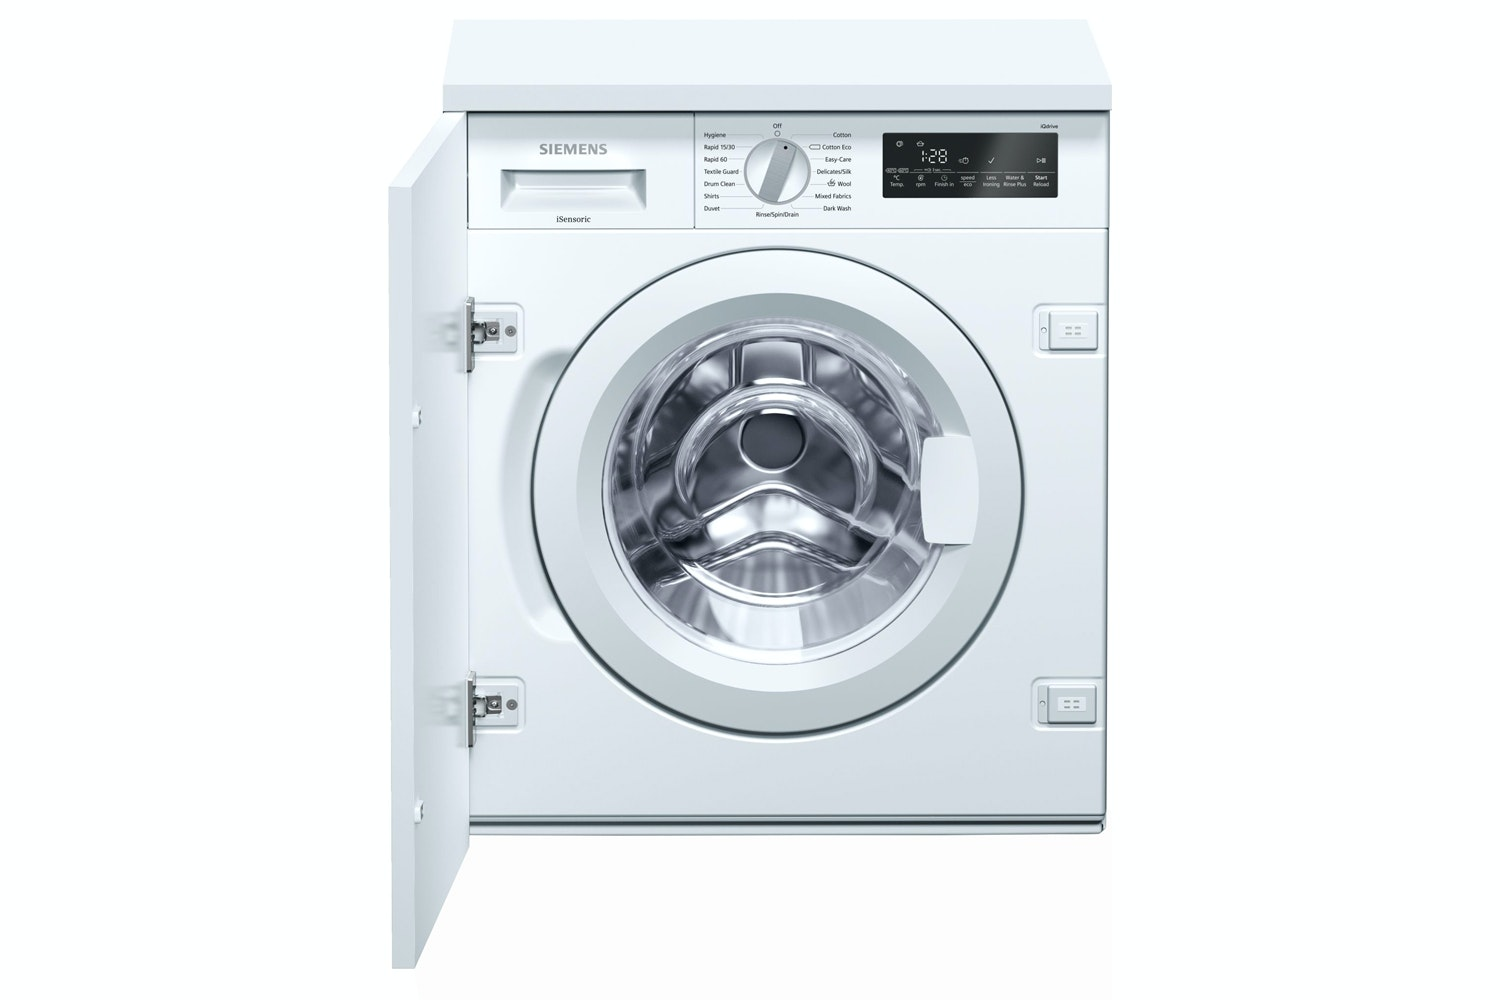 Siemens iQ700 8kg Built In Washing Machine | WI14W500GB